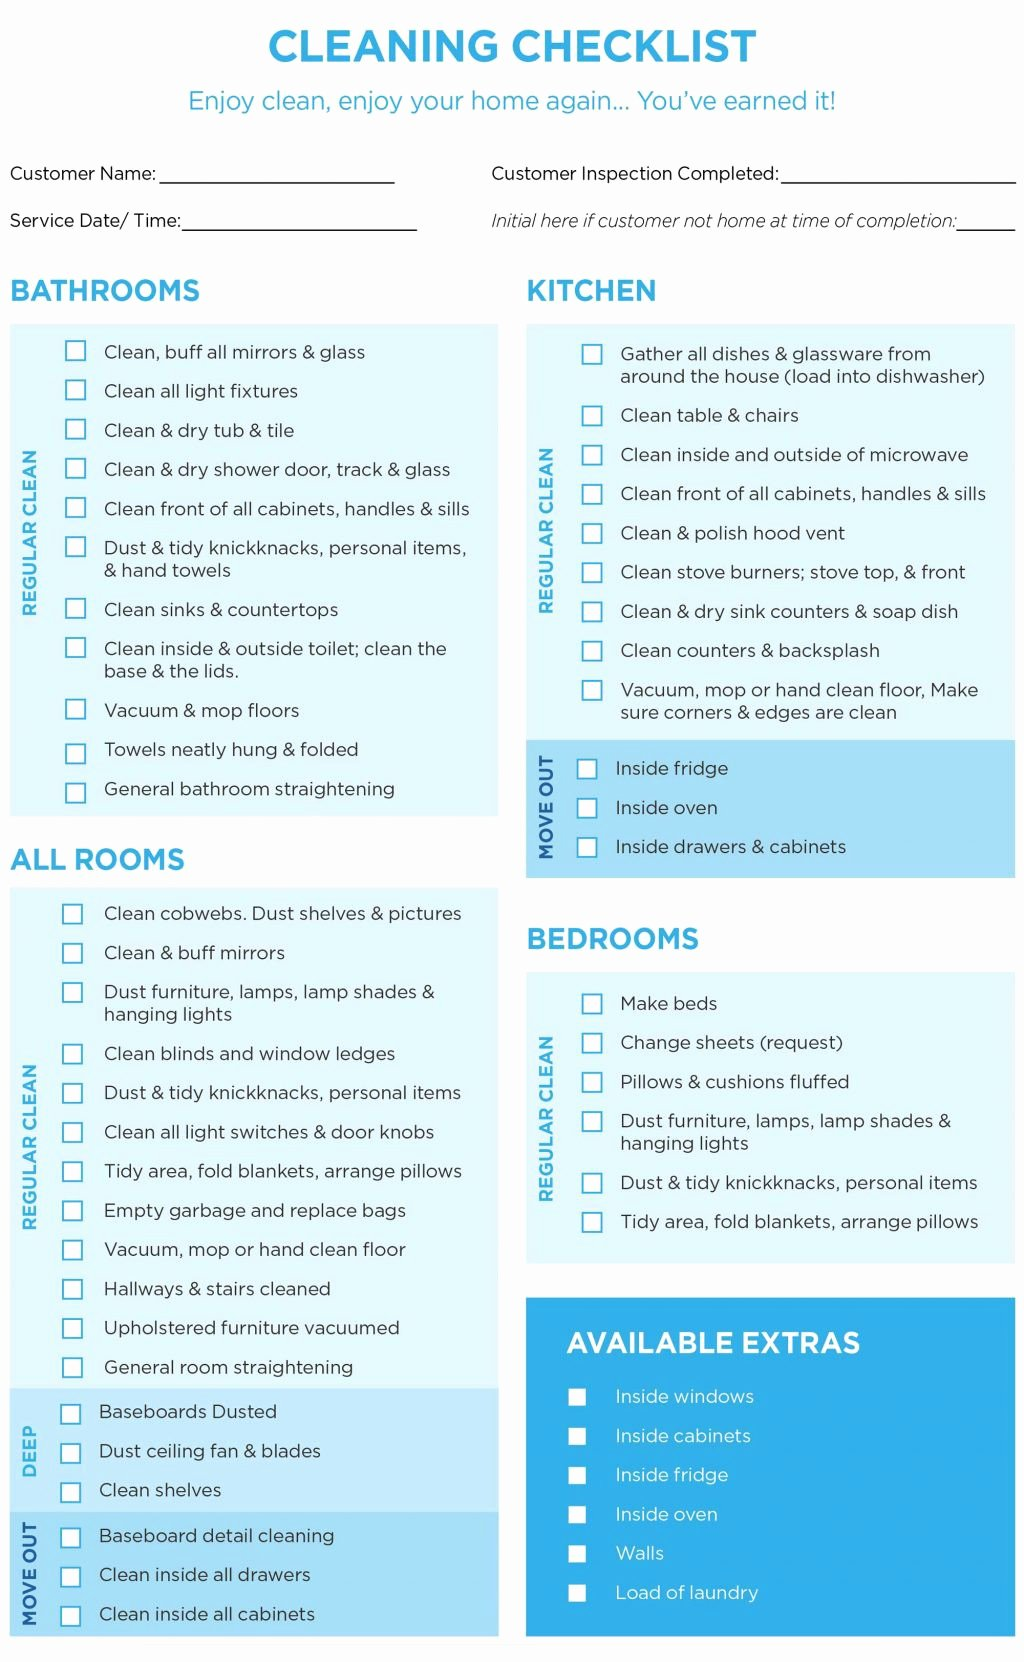 House Cleaning Checklist Template Fresh 40 Helpful House Cleaning Checklists for You